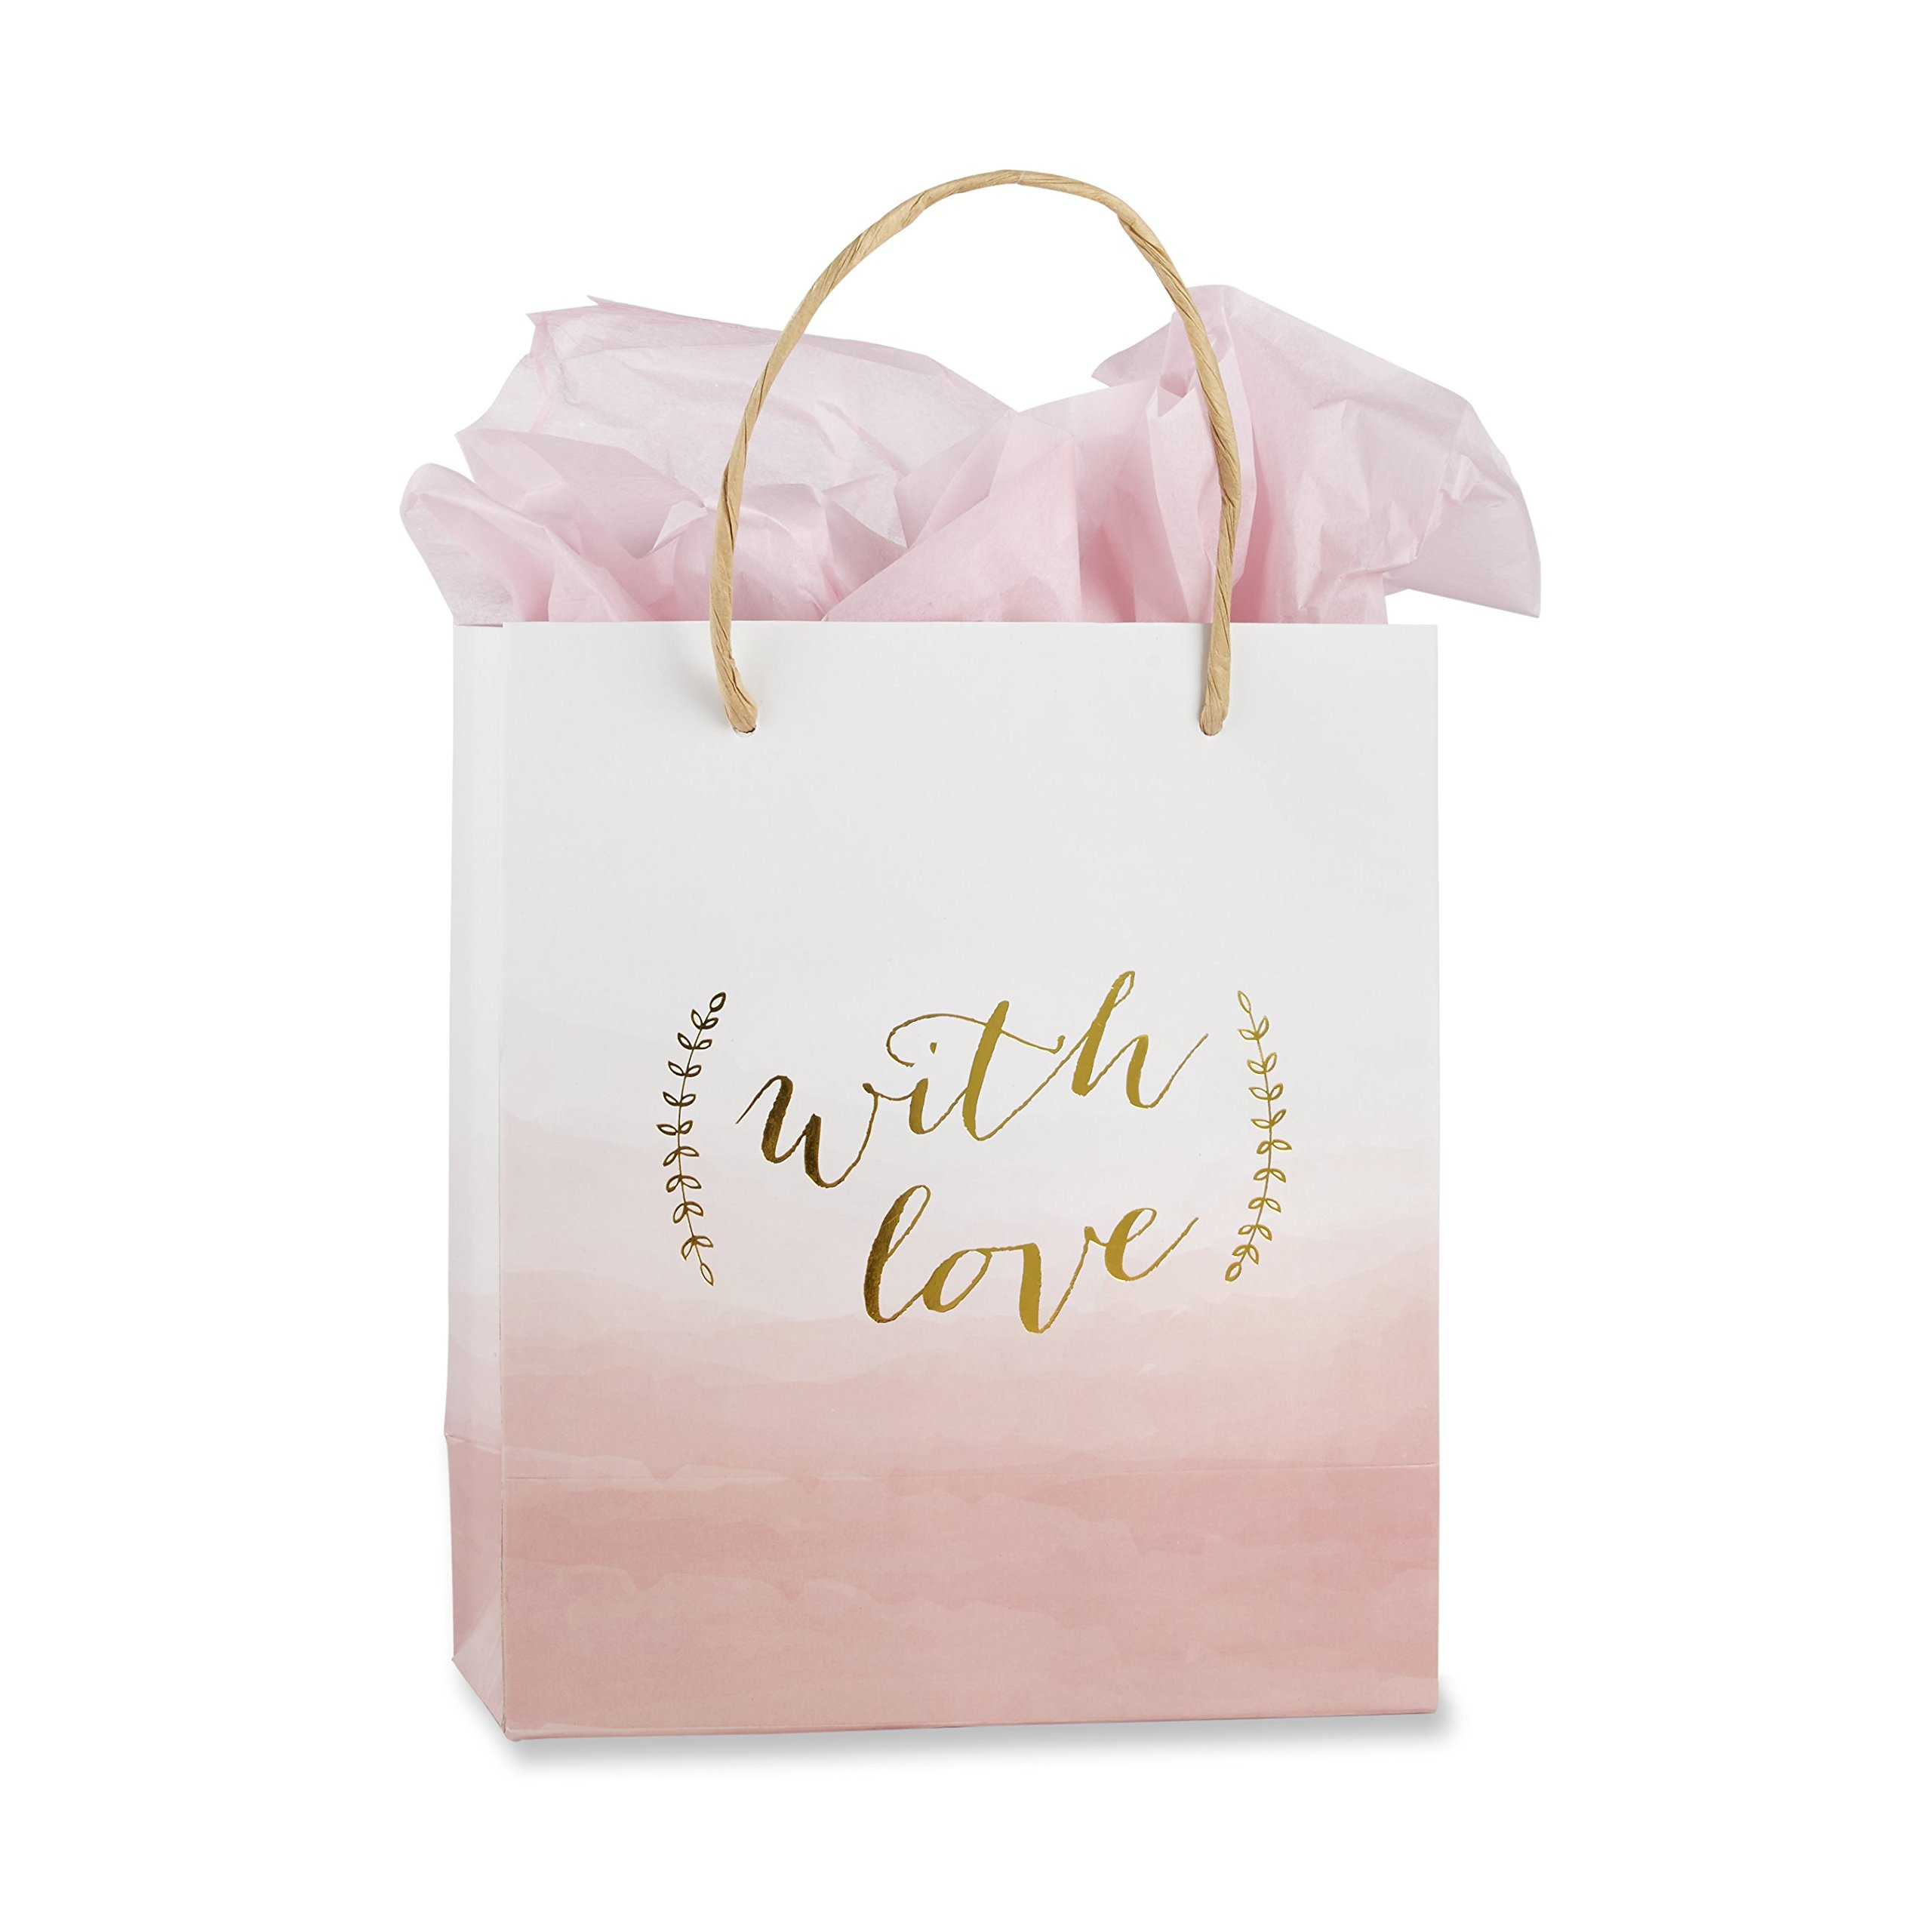 Kate Aspen with Love Pink Watercolor Gift Bag (Set of 12), Pink, White and Gold